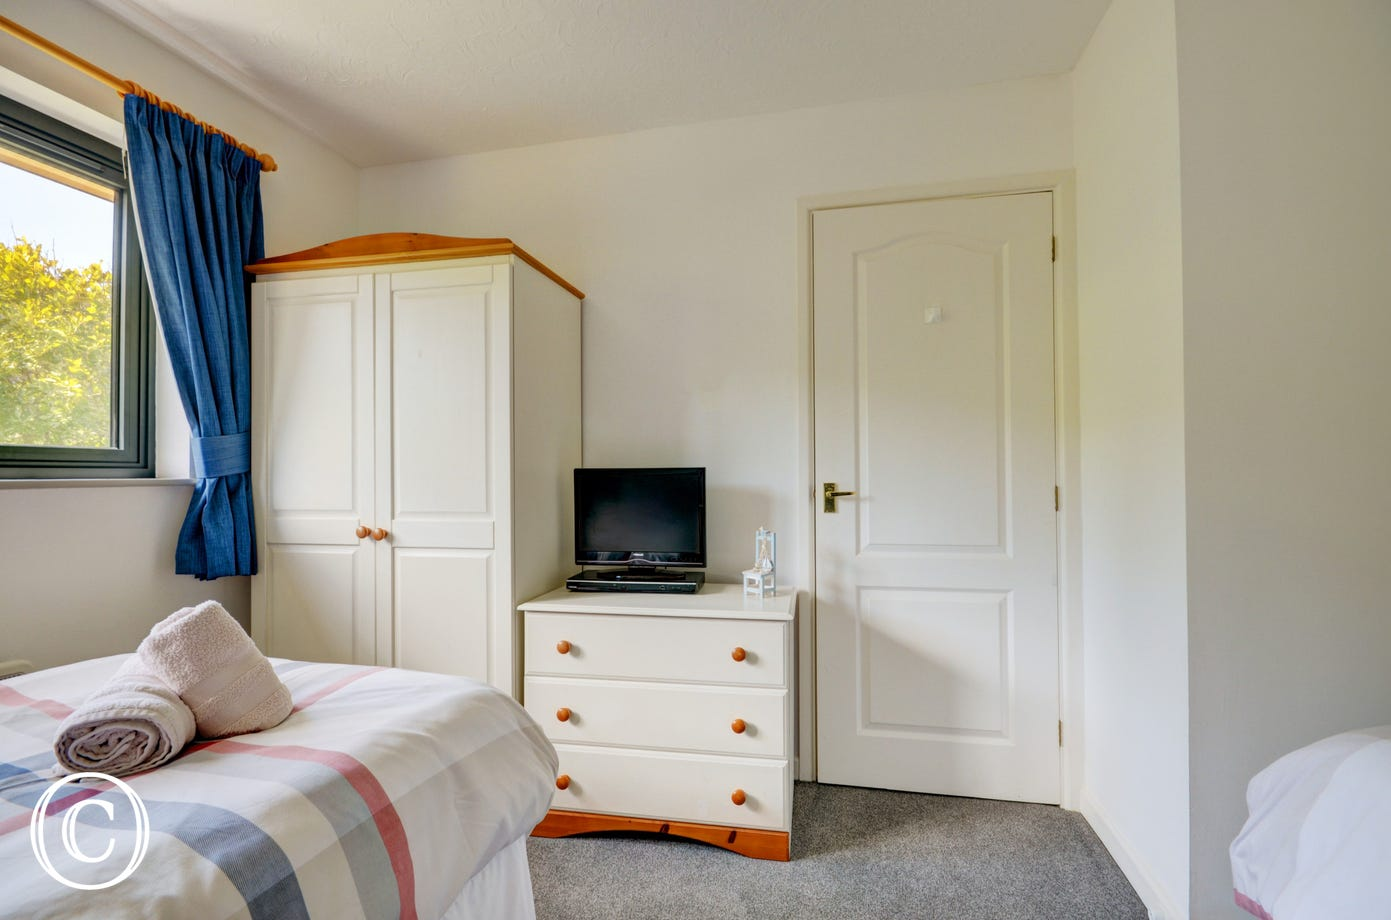 The twin room is spacious and has lovely views towards the back of the property